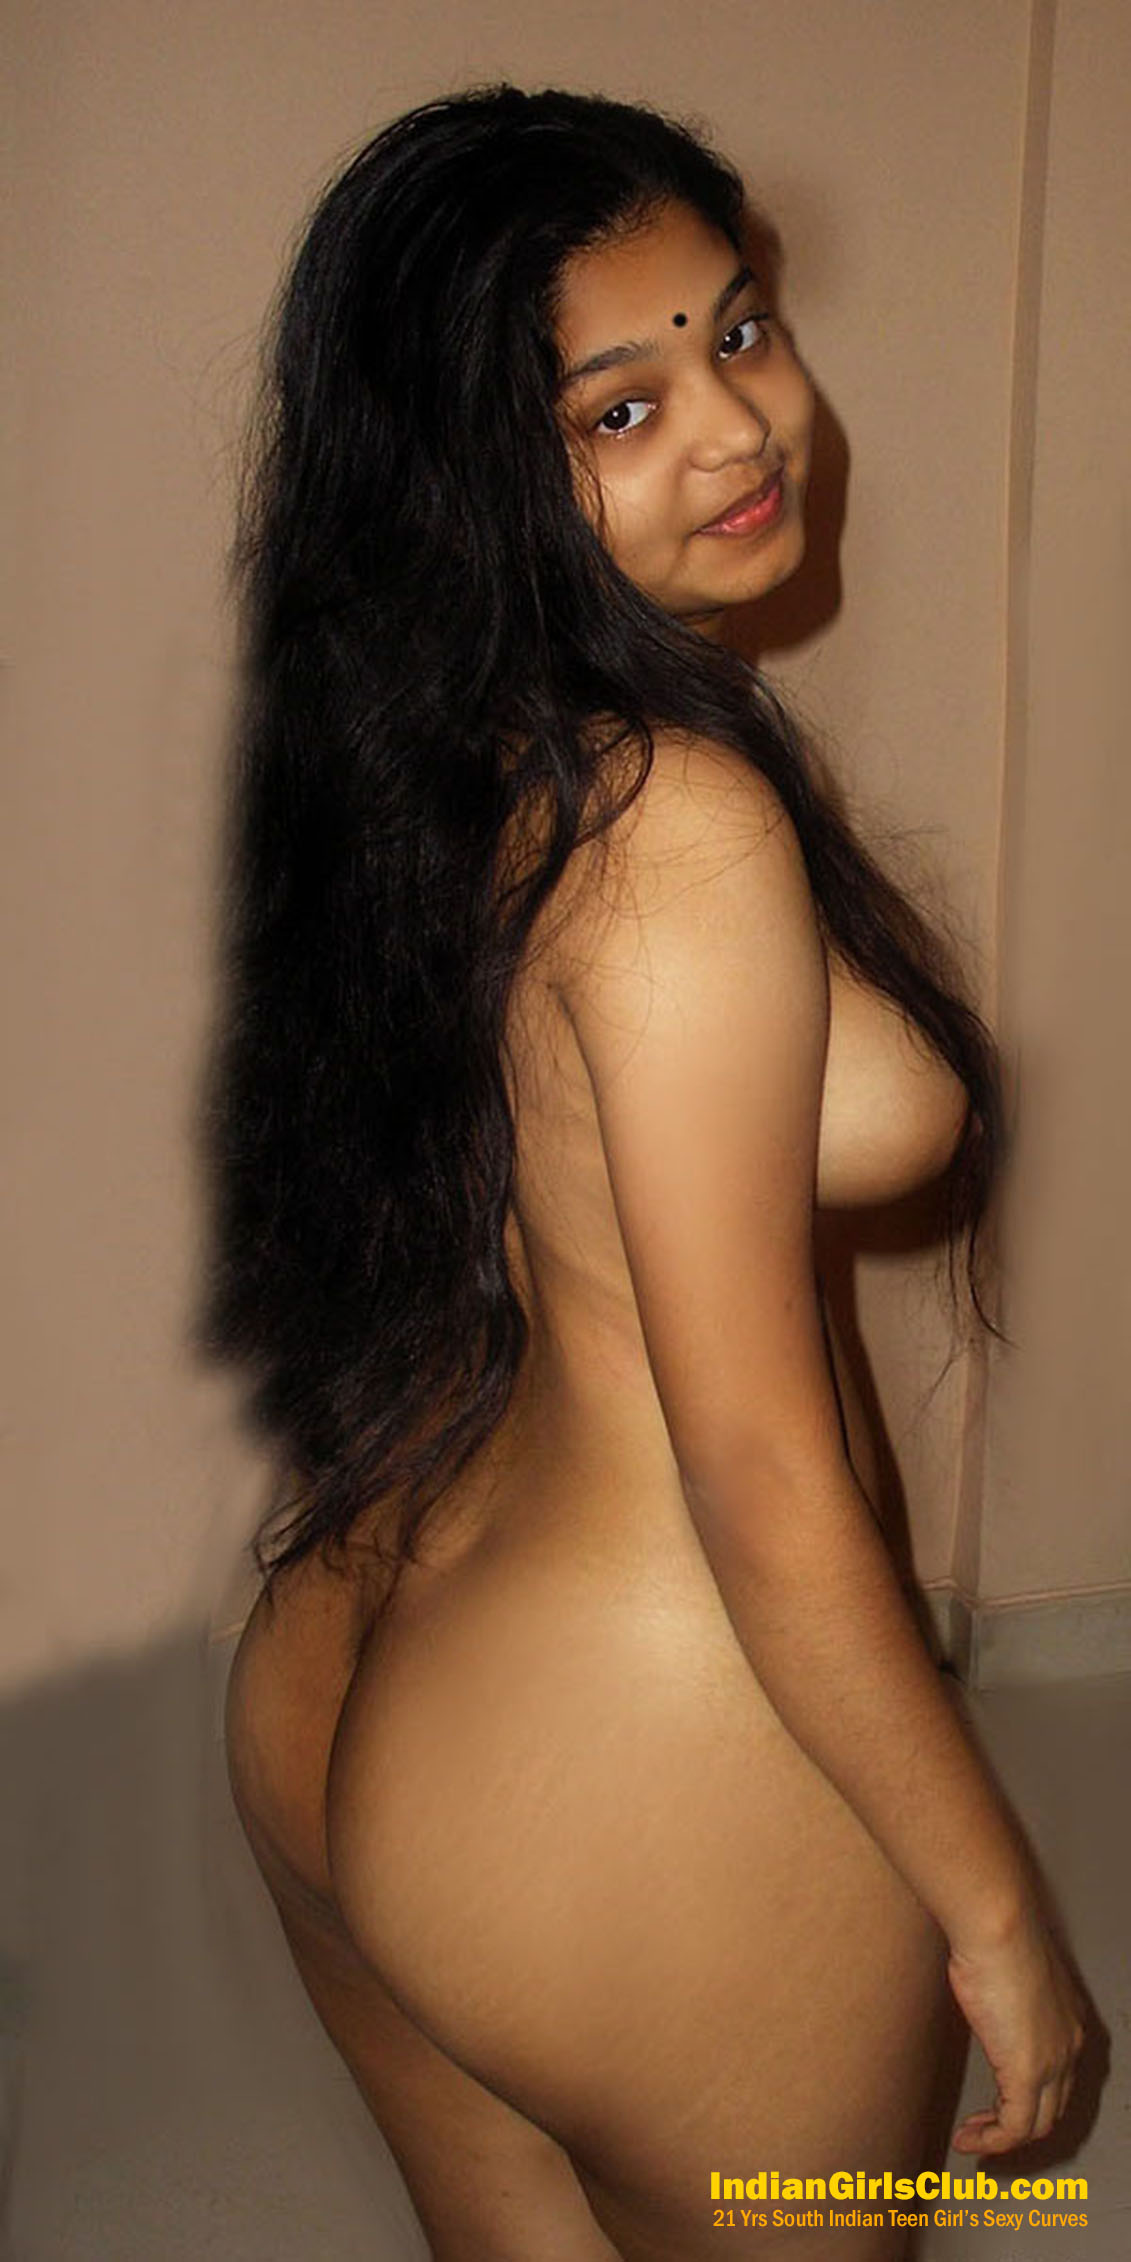 Nude girls perfect pakistani, extreme butt plugs porn